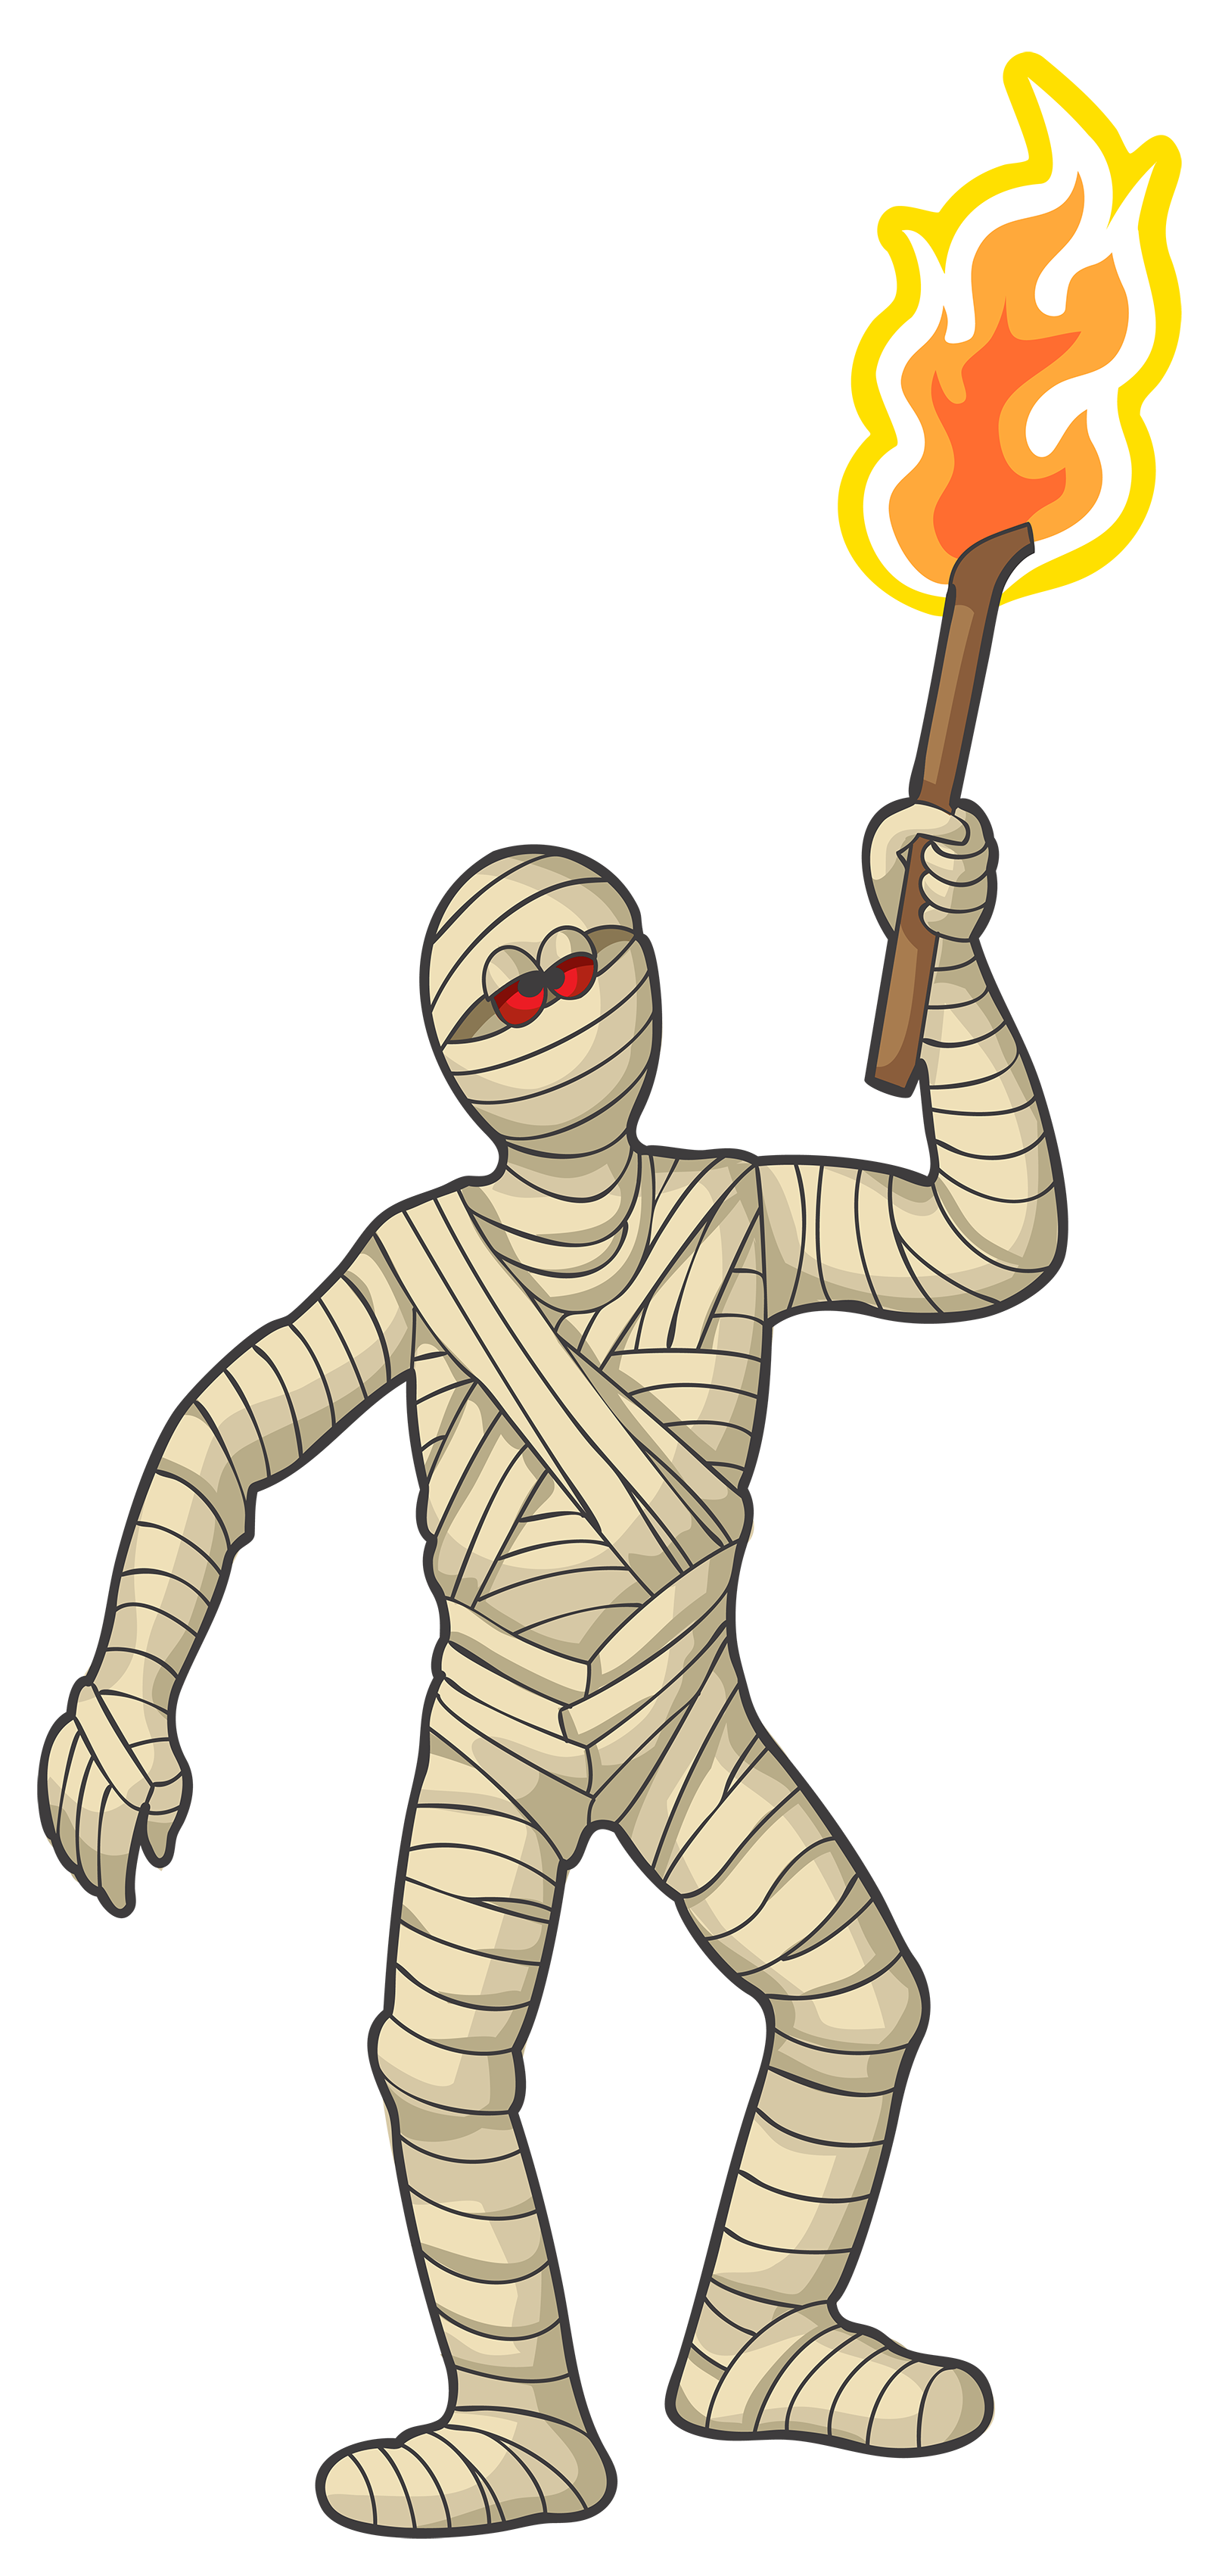 Mummy transparent clipart. Halloween png image gallery